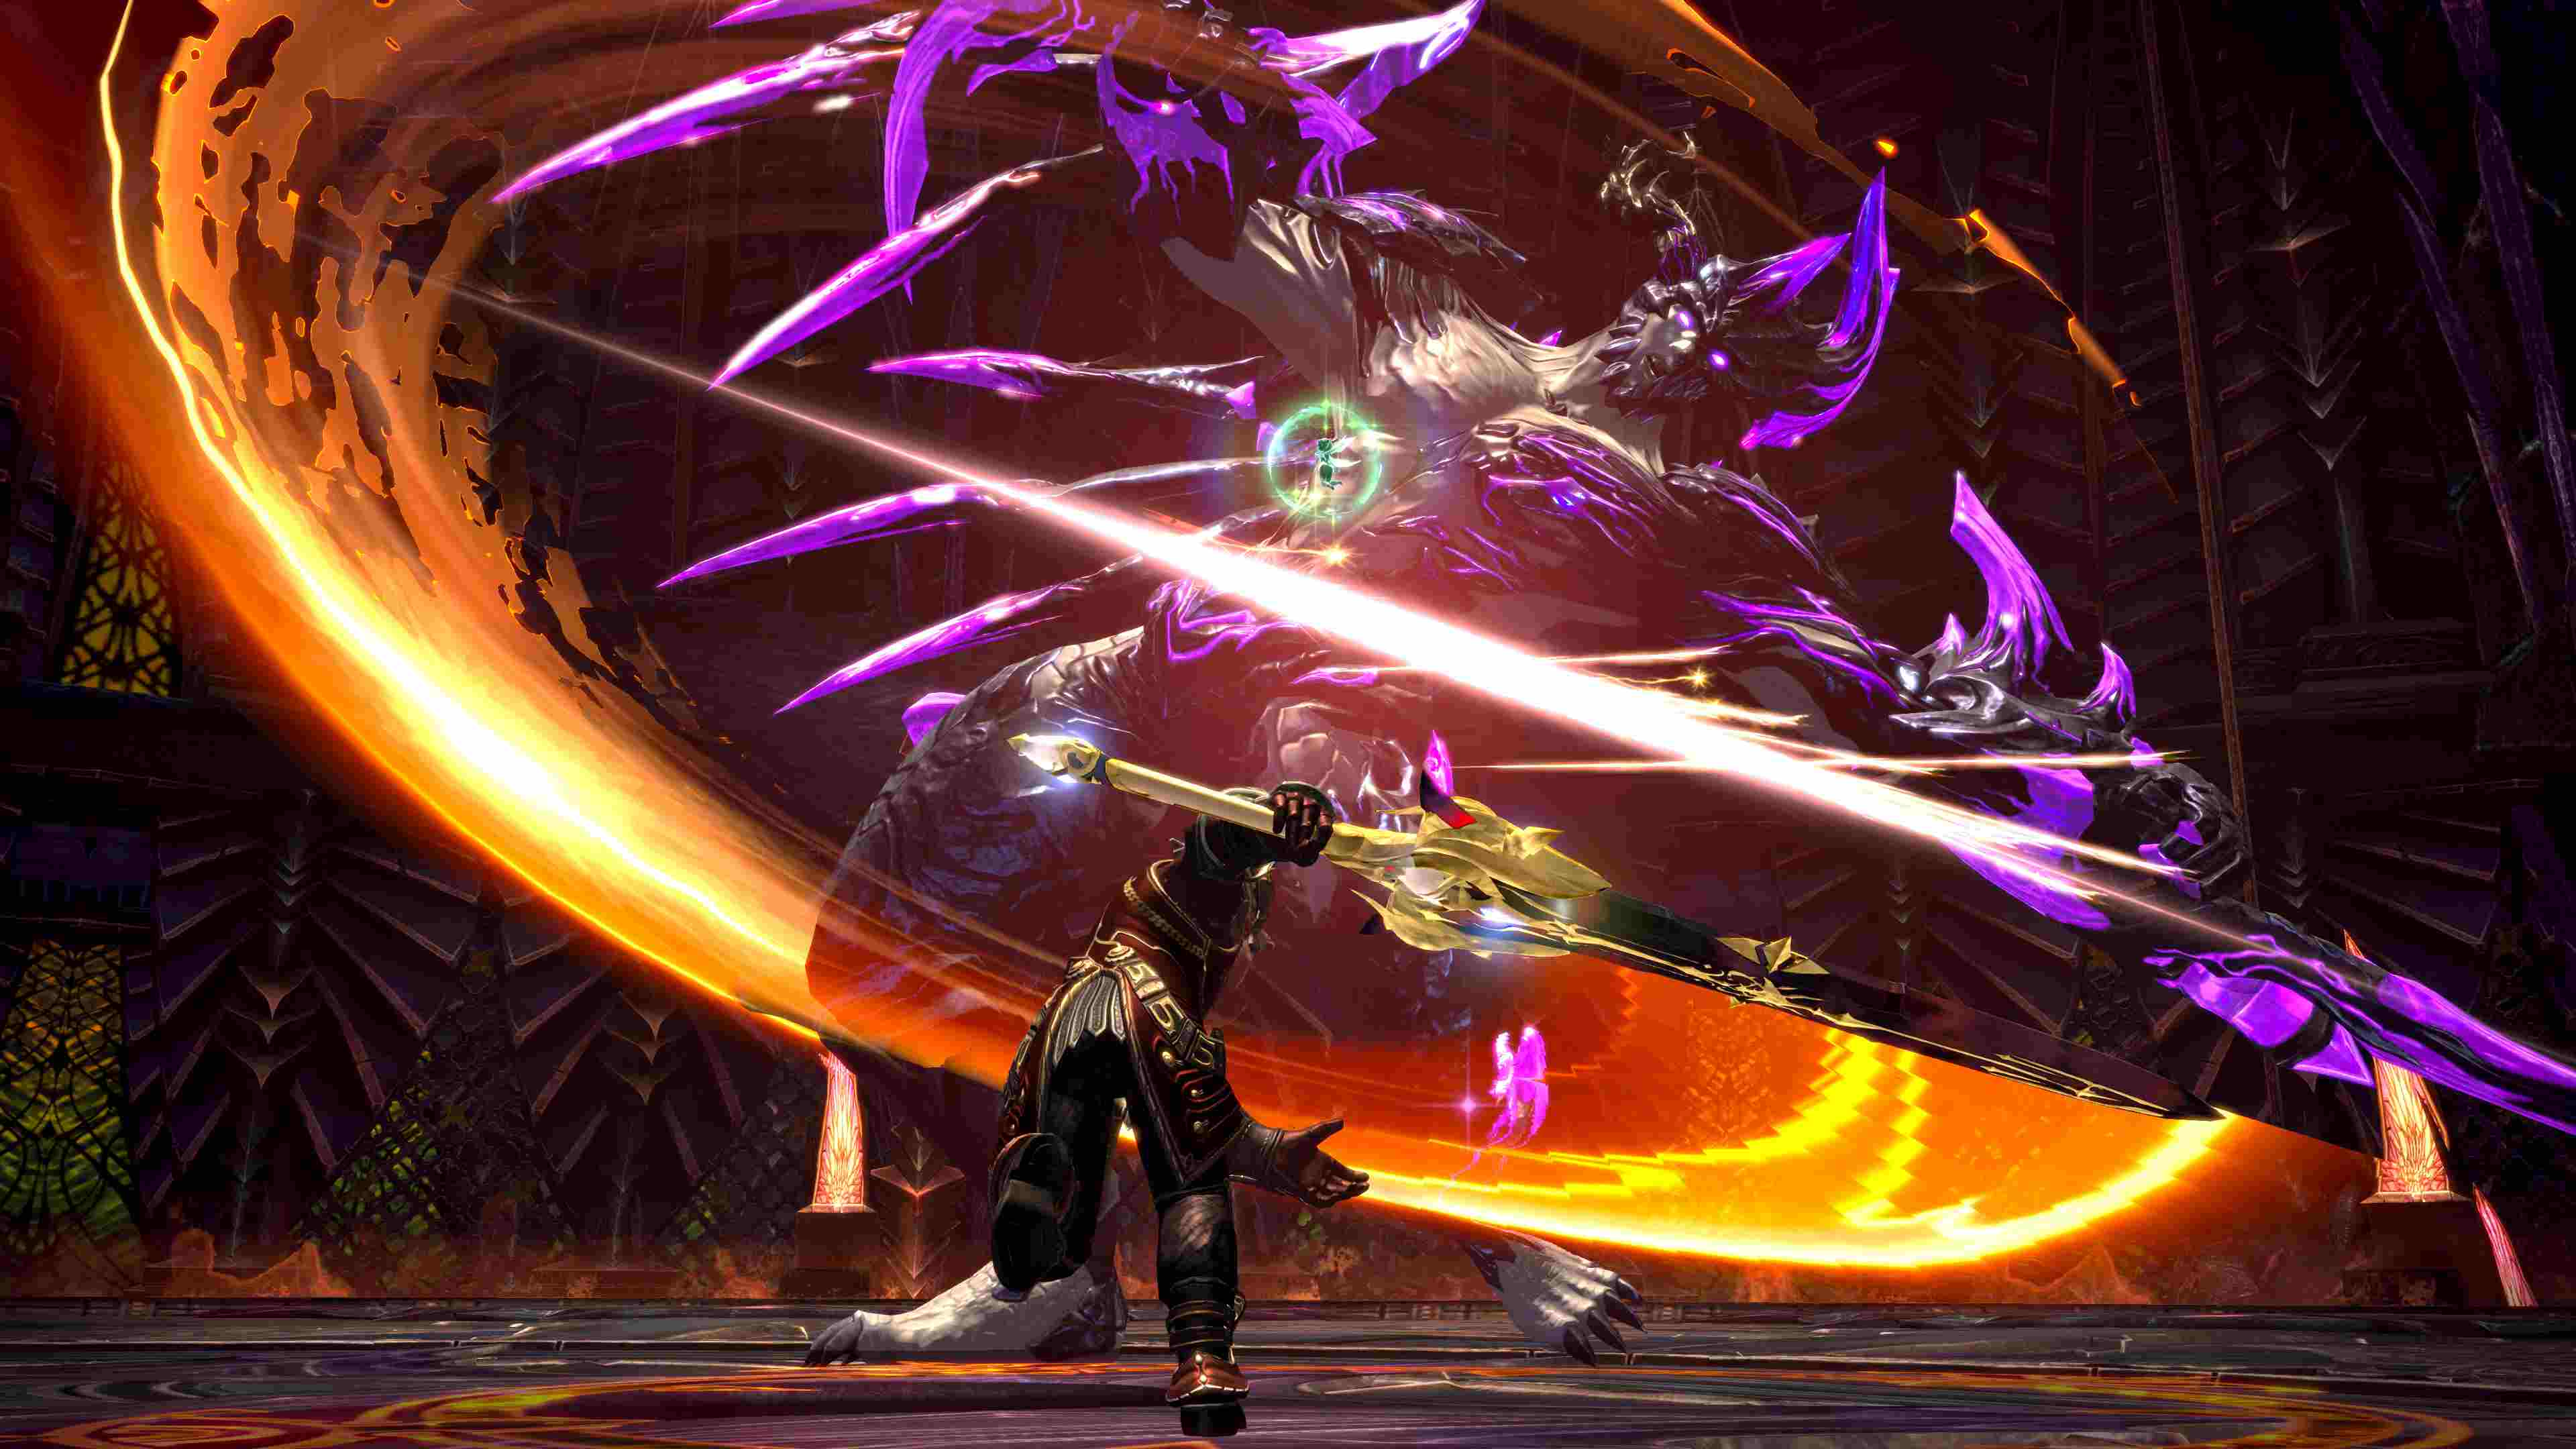 Tera Halloween Event 2020 Levvel New Awakening Update For TERA On Xbox One And PlayStation 4